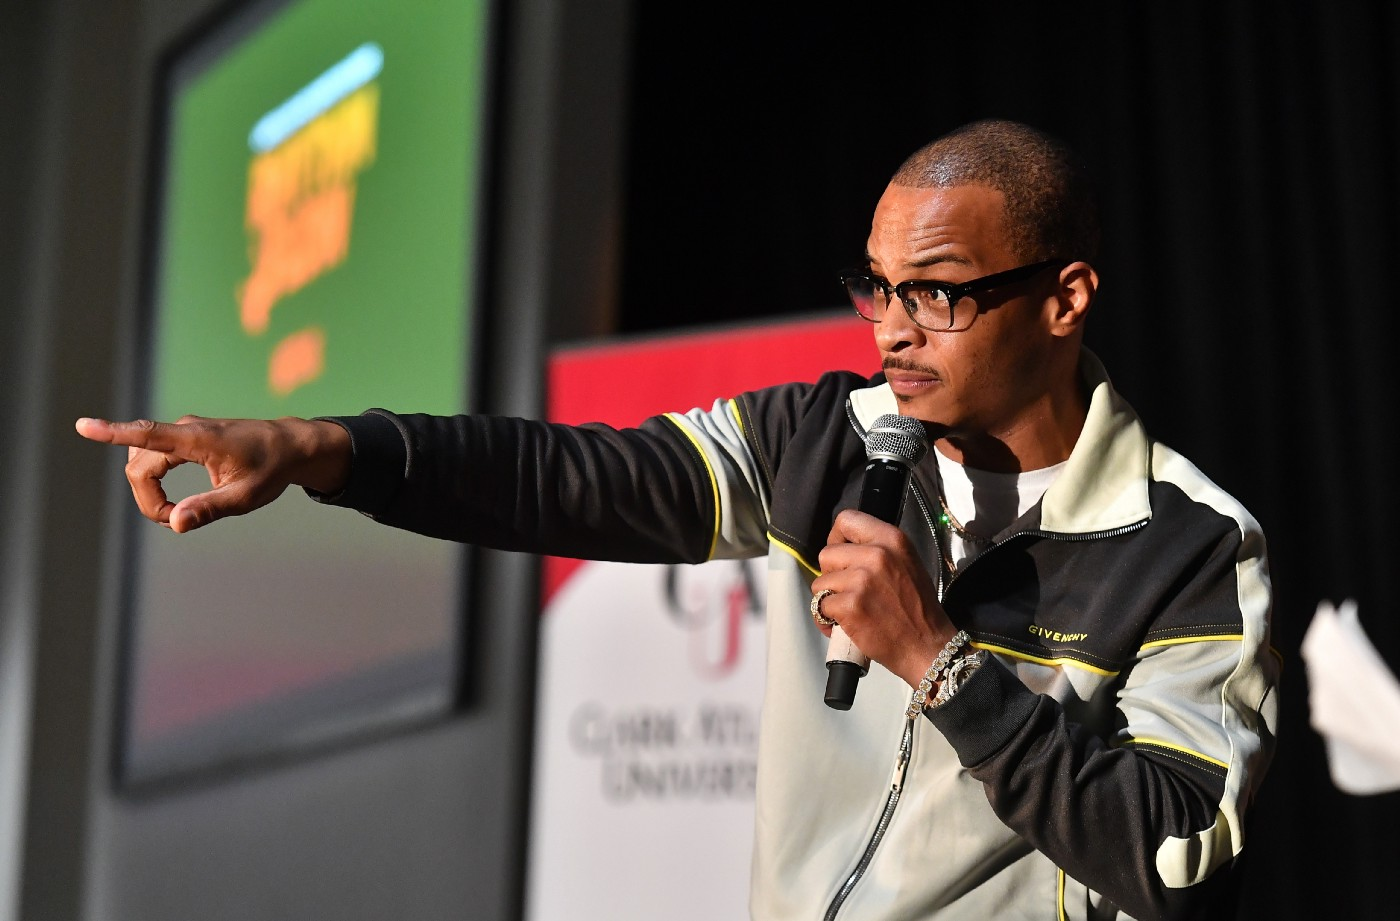 A photo of T.I. onstage pointing with his left arm into the crowd.